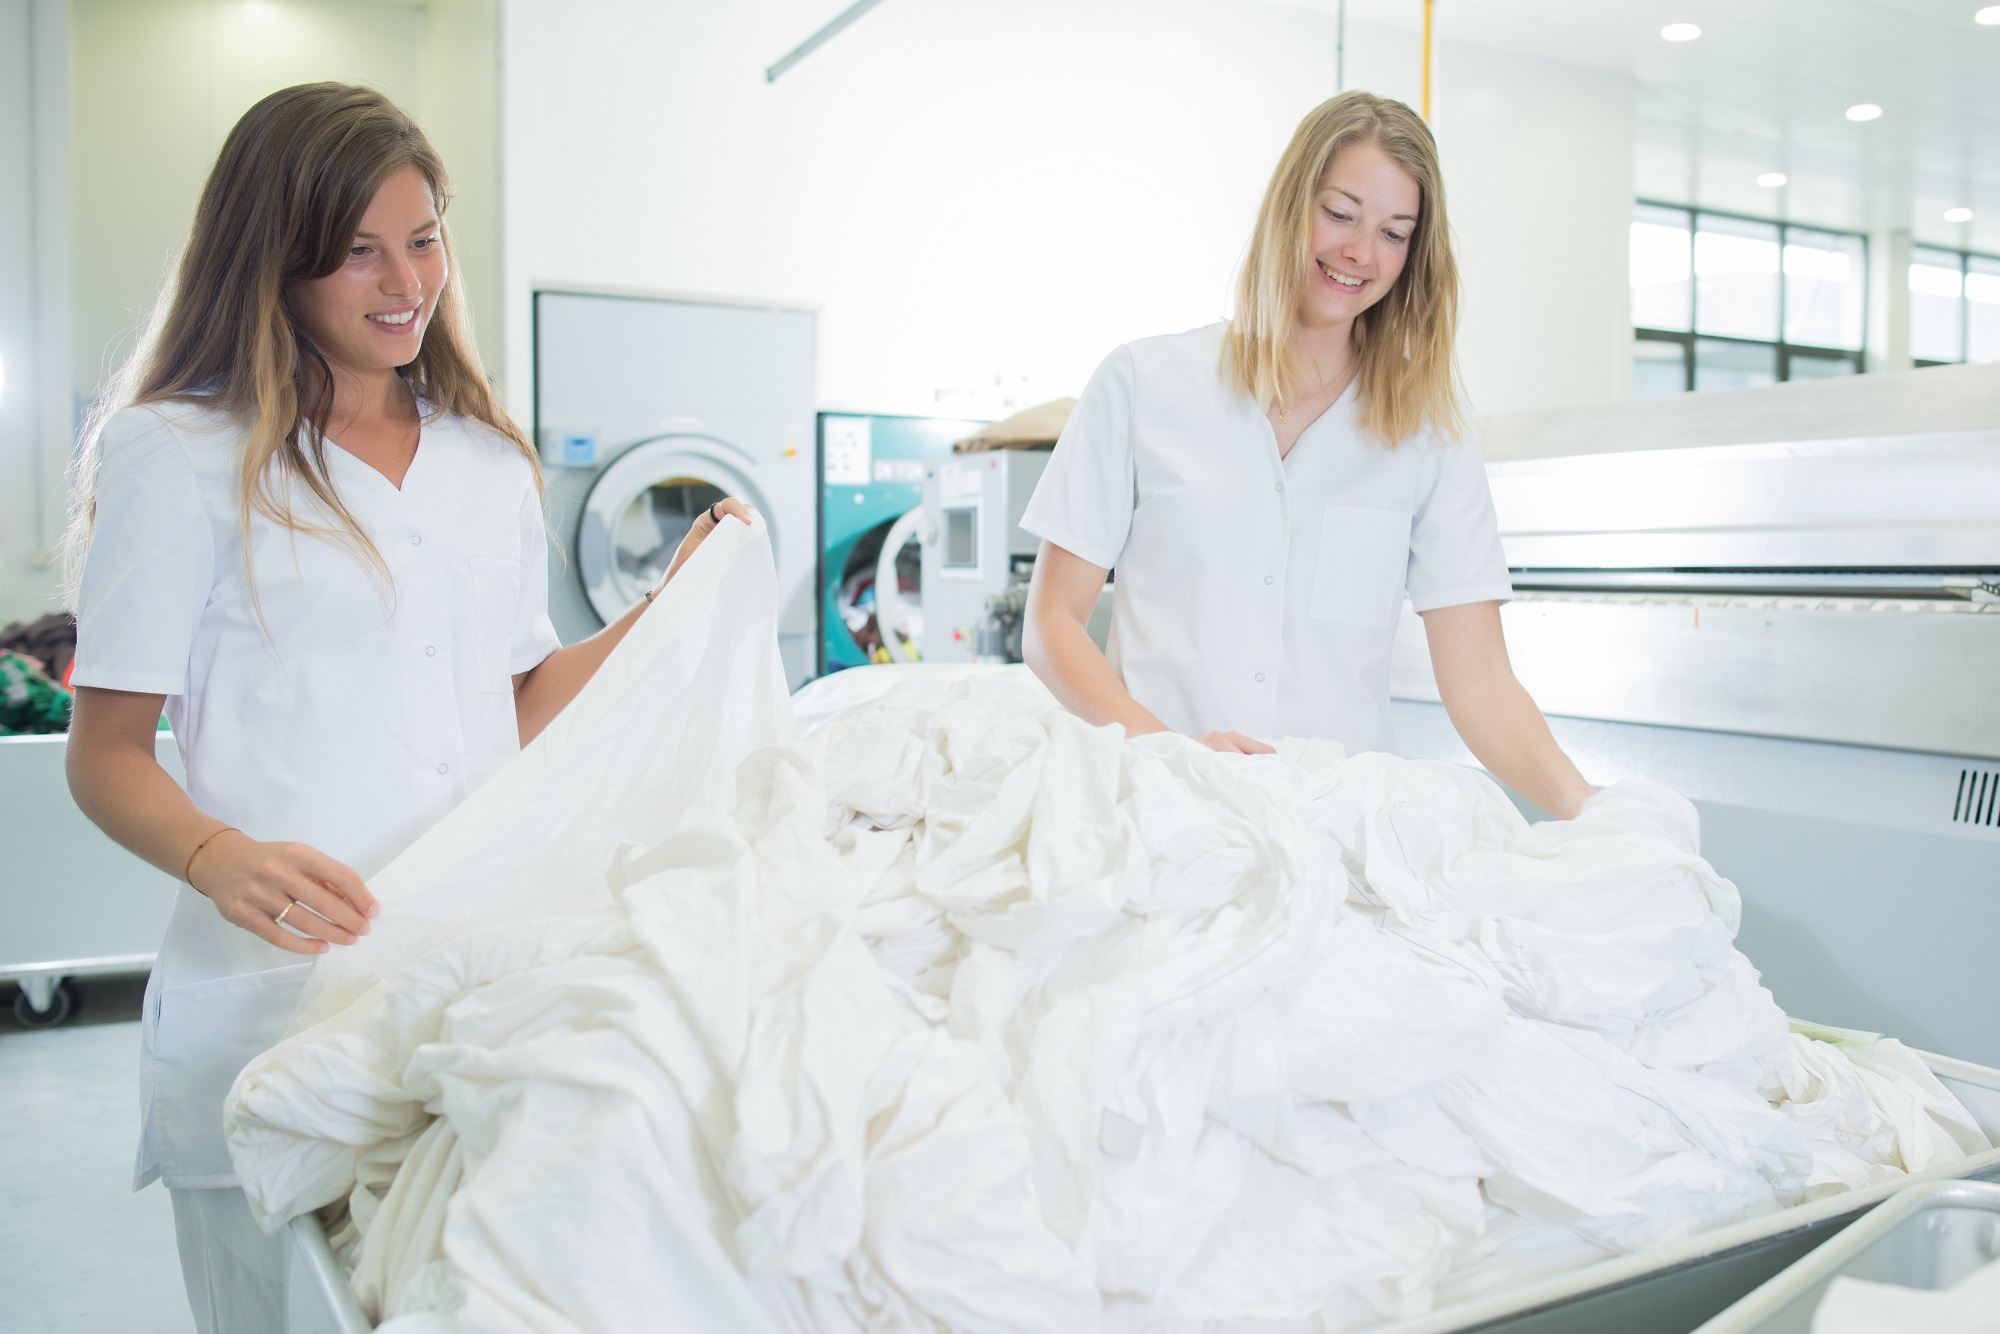 two women working in a laundry room